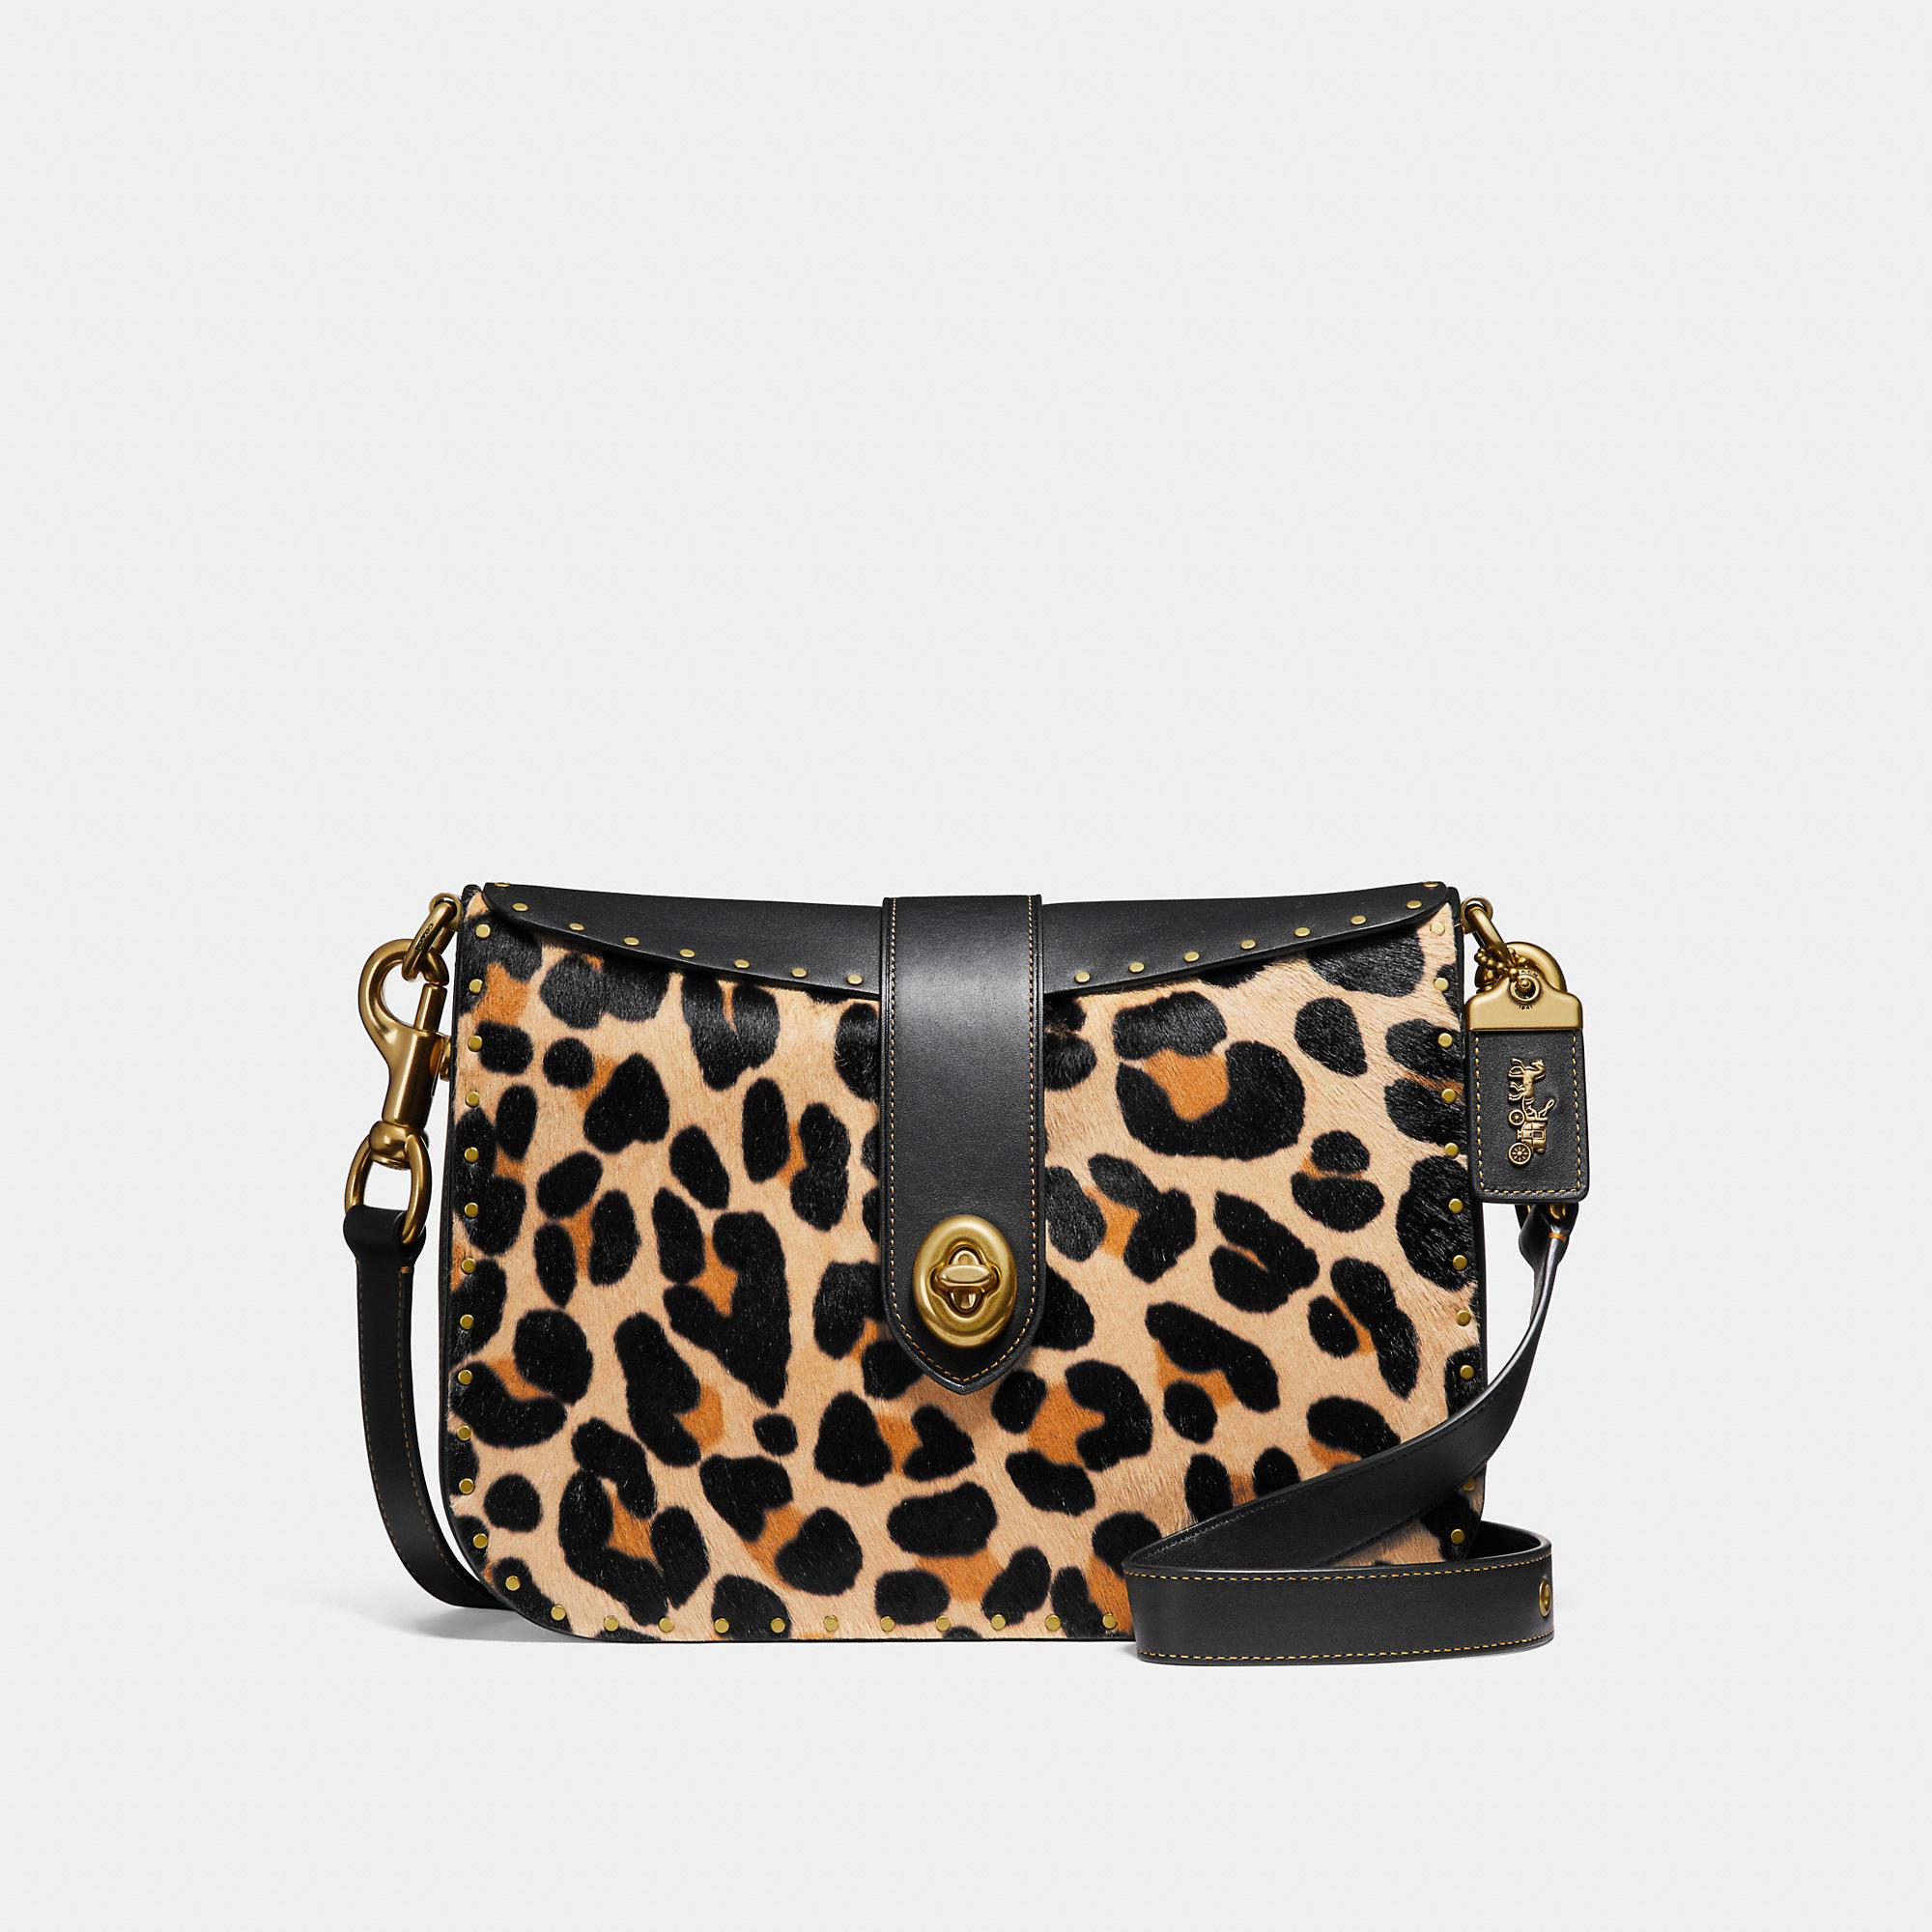 85cc8288ac1b Coach Page 27 With Leopard Print - Women's In Leopard/Brass | ModeSens